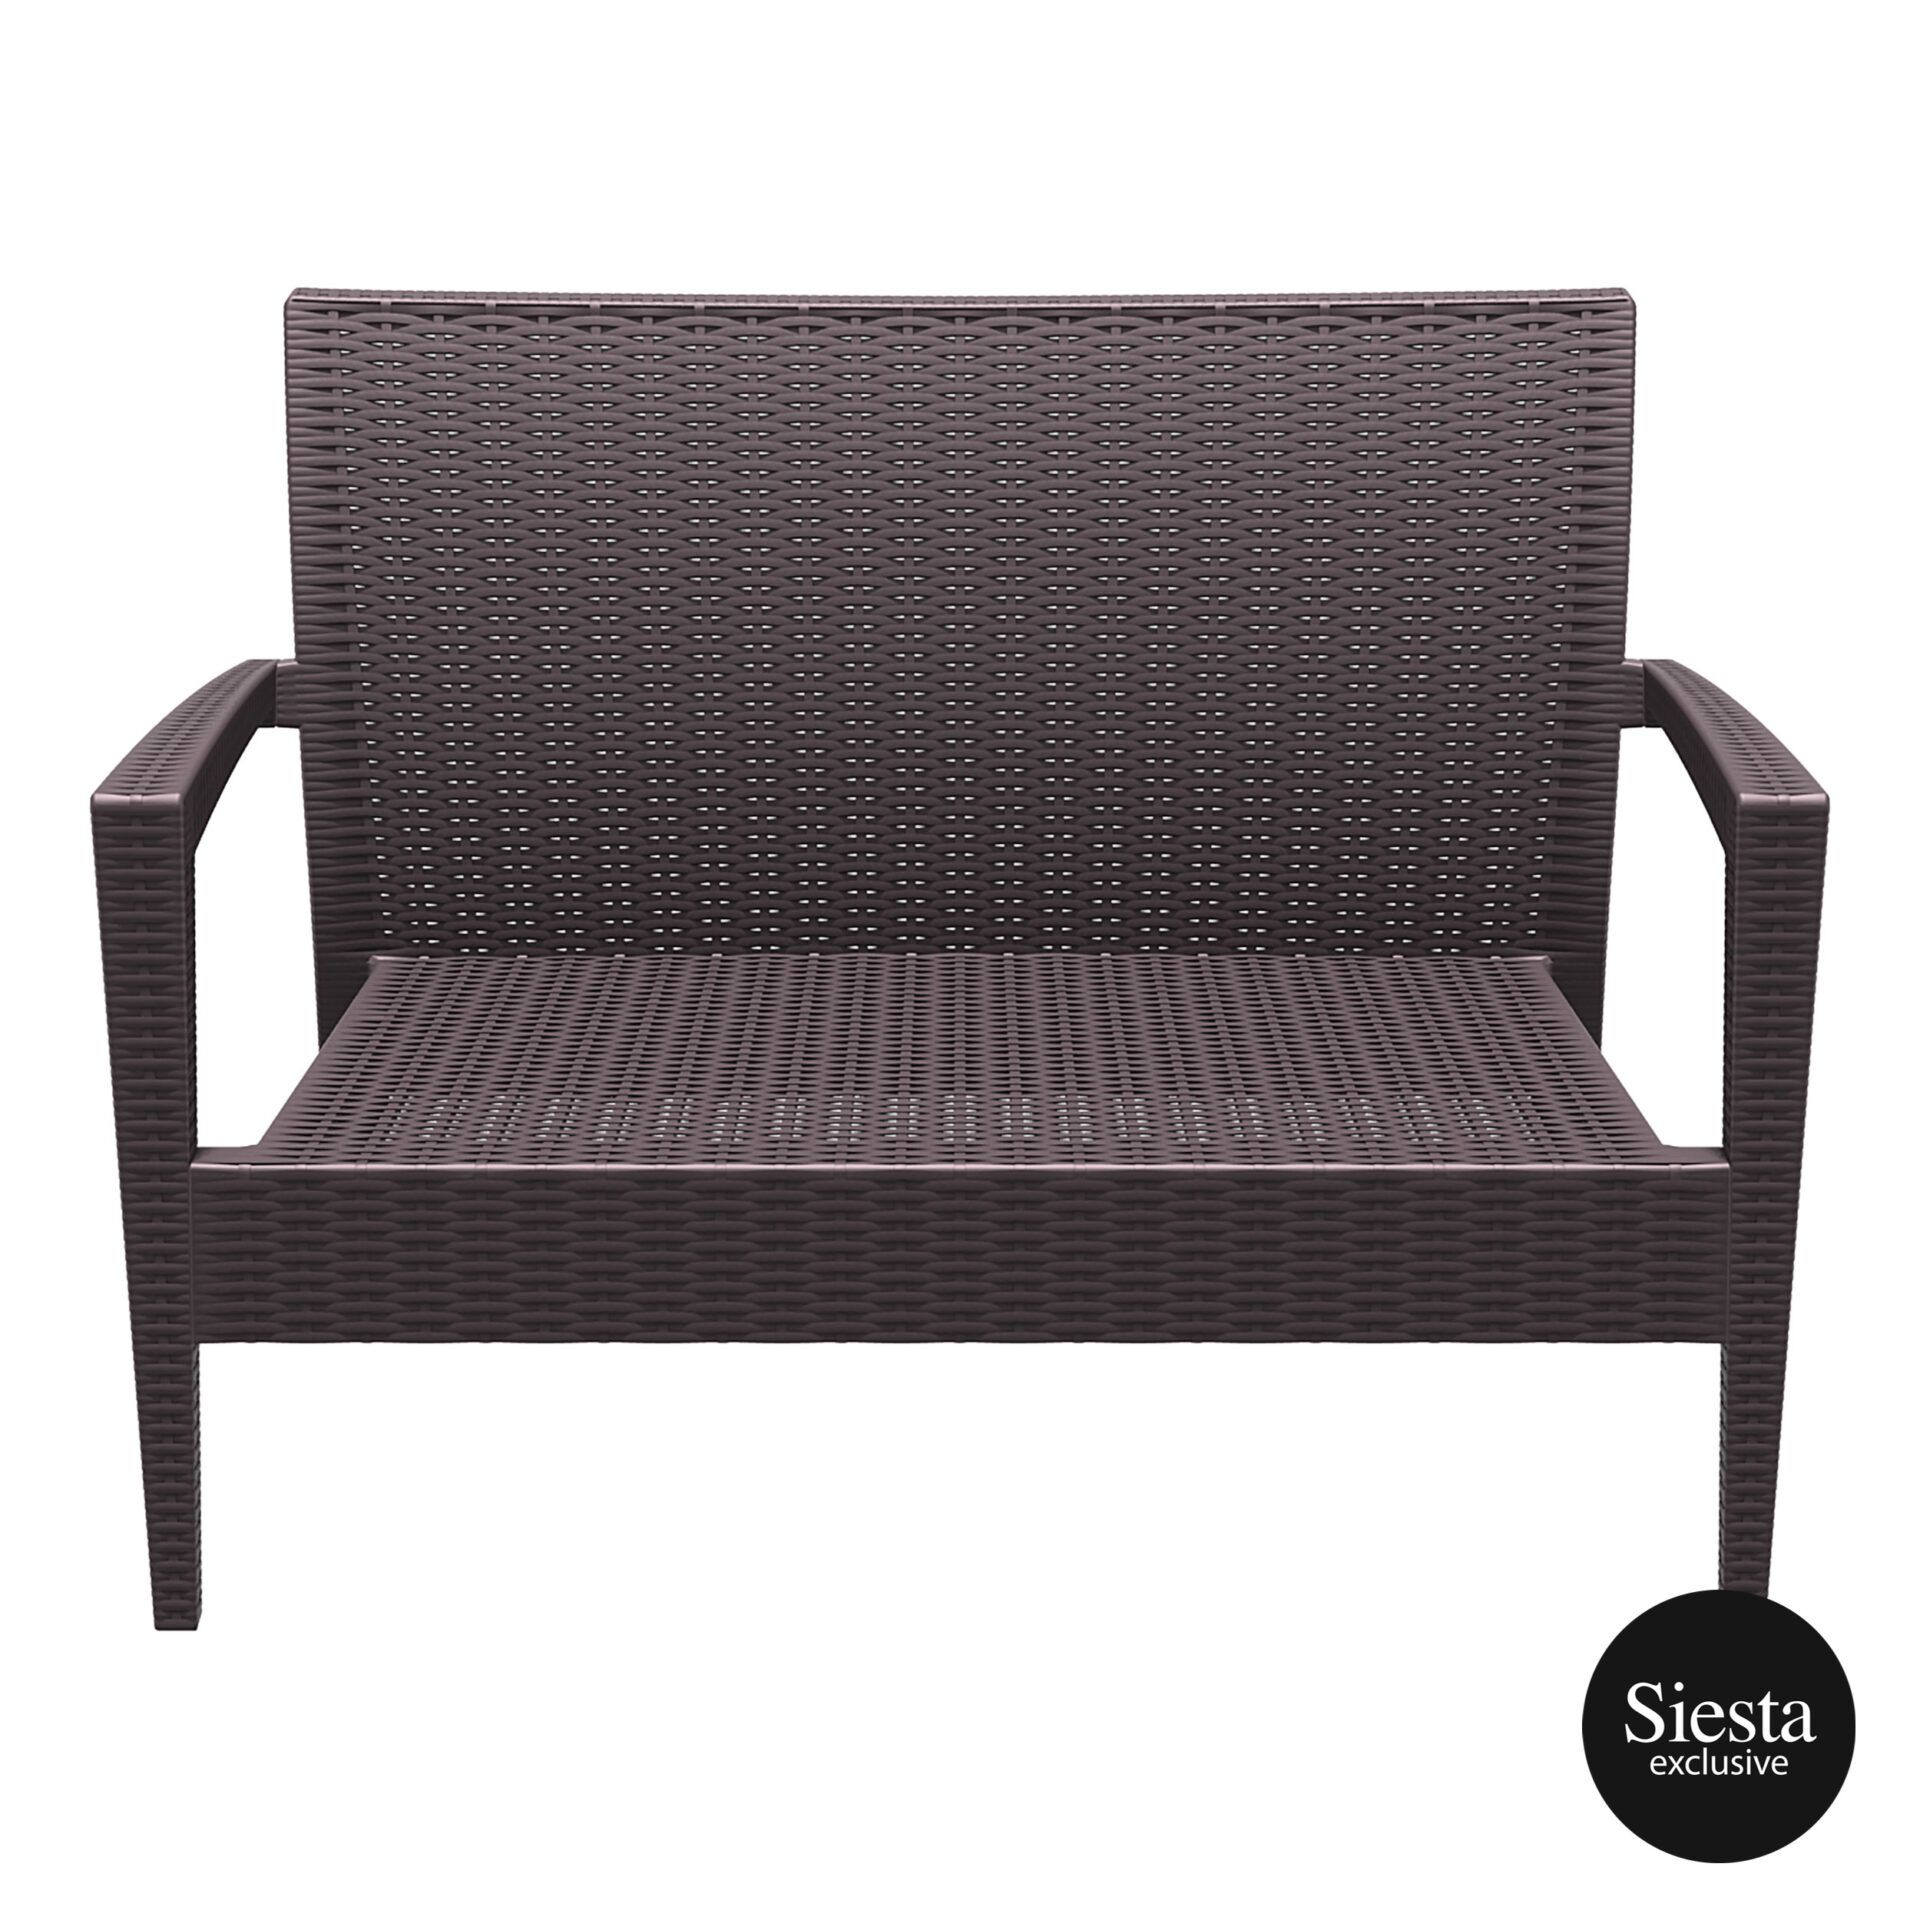 Resin Rattan Miami Tequila Lounge sofa brown front